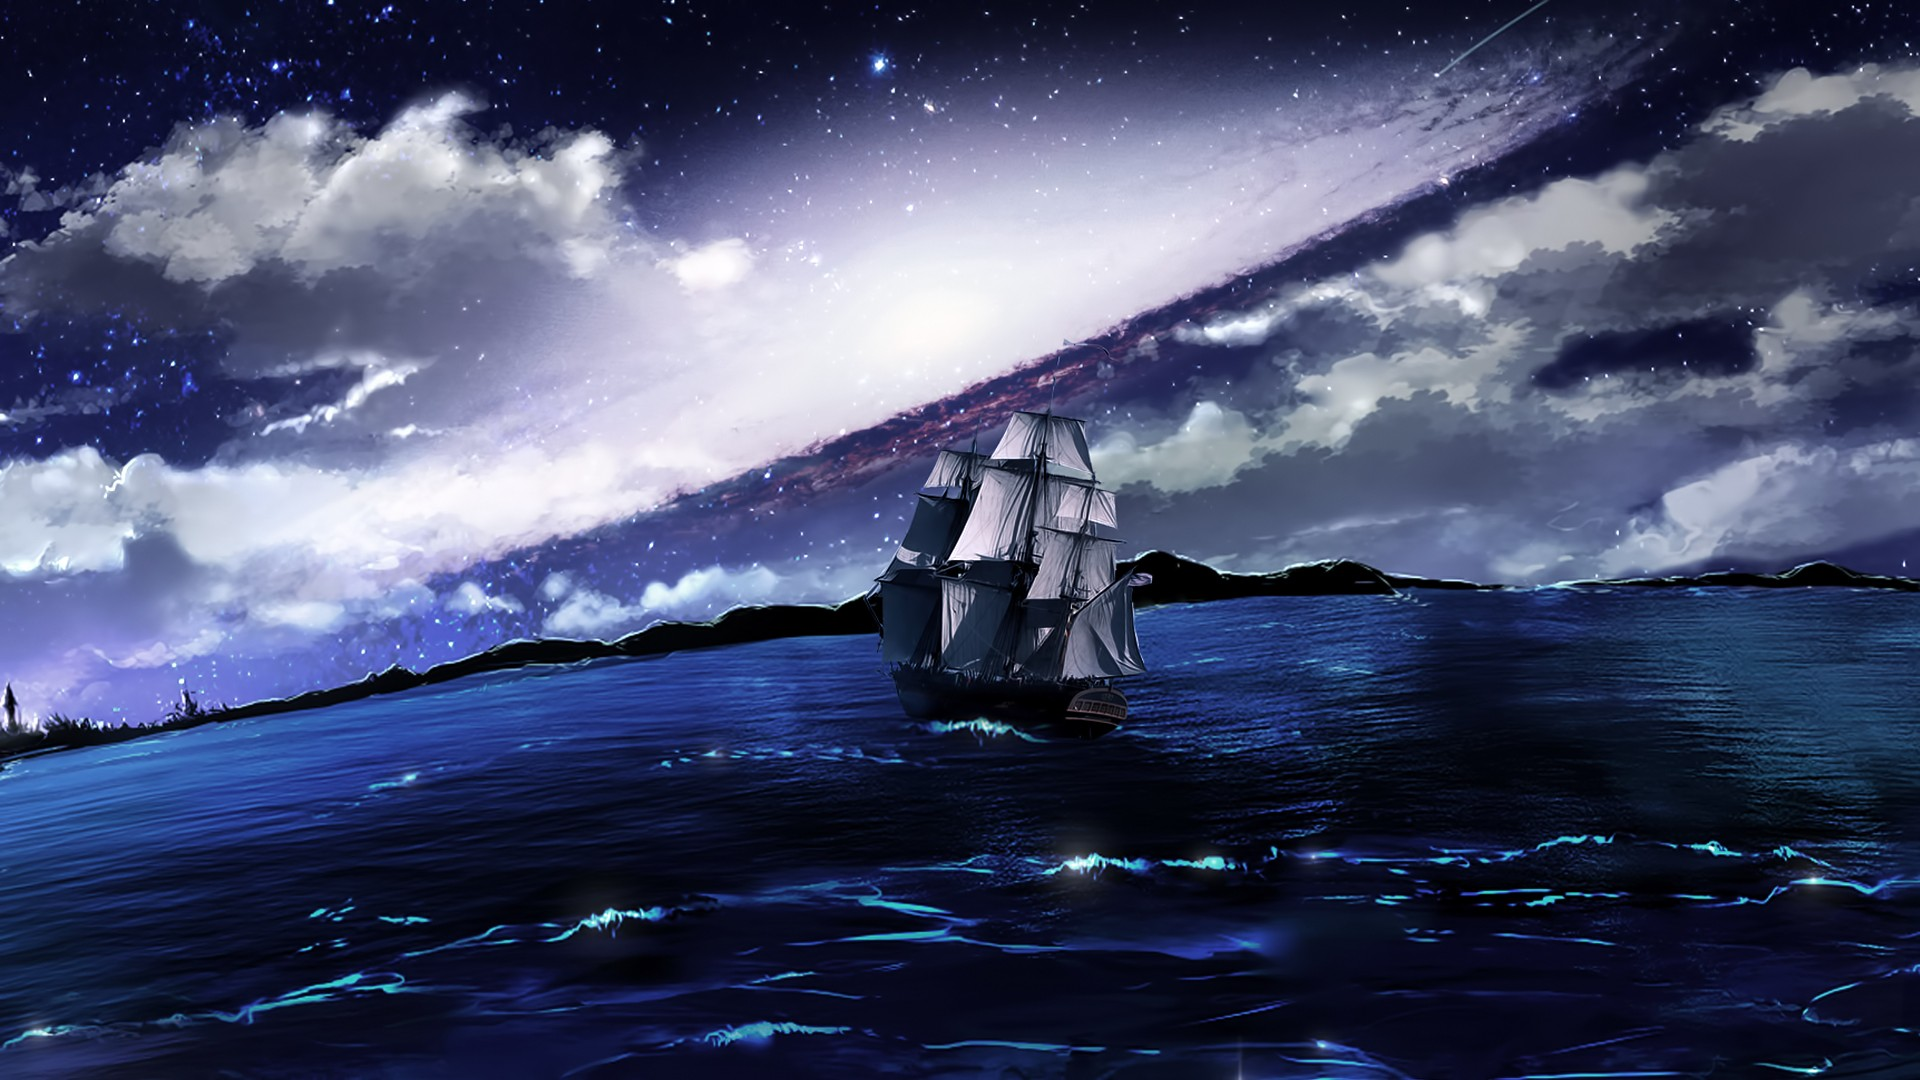 Simple Wallpaper High Quality Space - fct63Z  Collection_94153.jpg